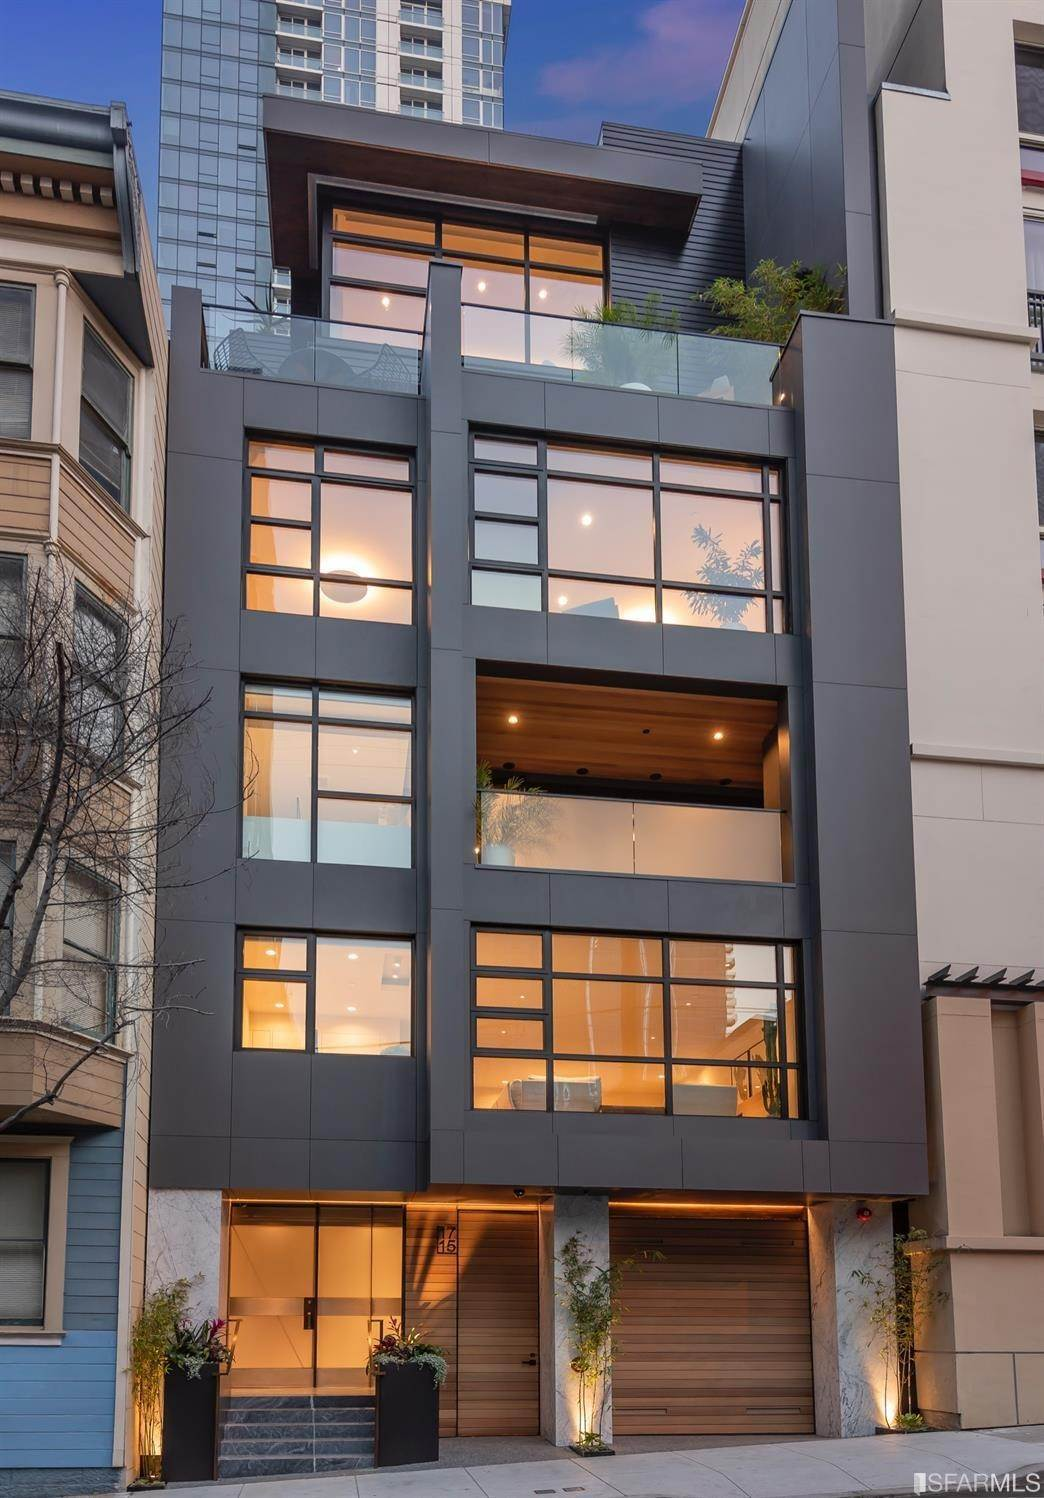 Single Family Homes for Sale at 17 Guy Place San Francisco, California 94105 United States